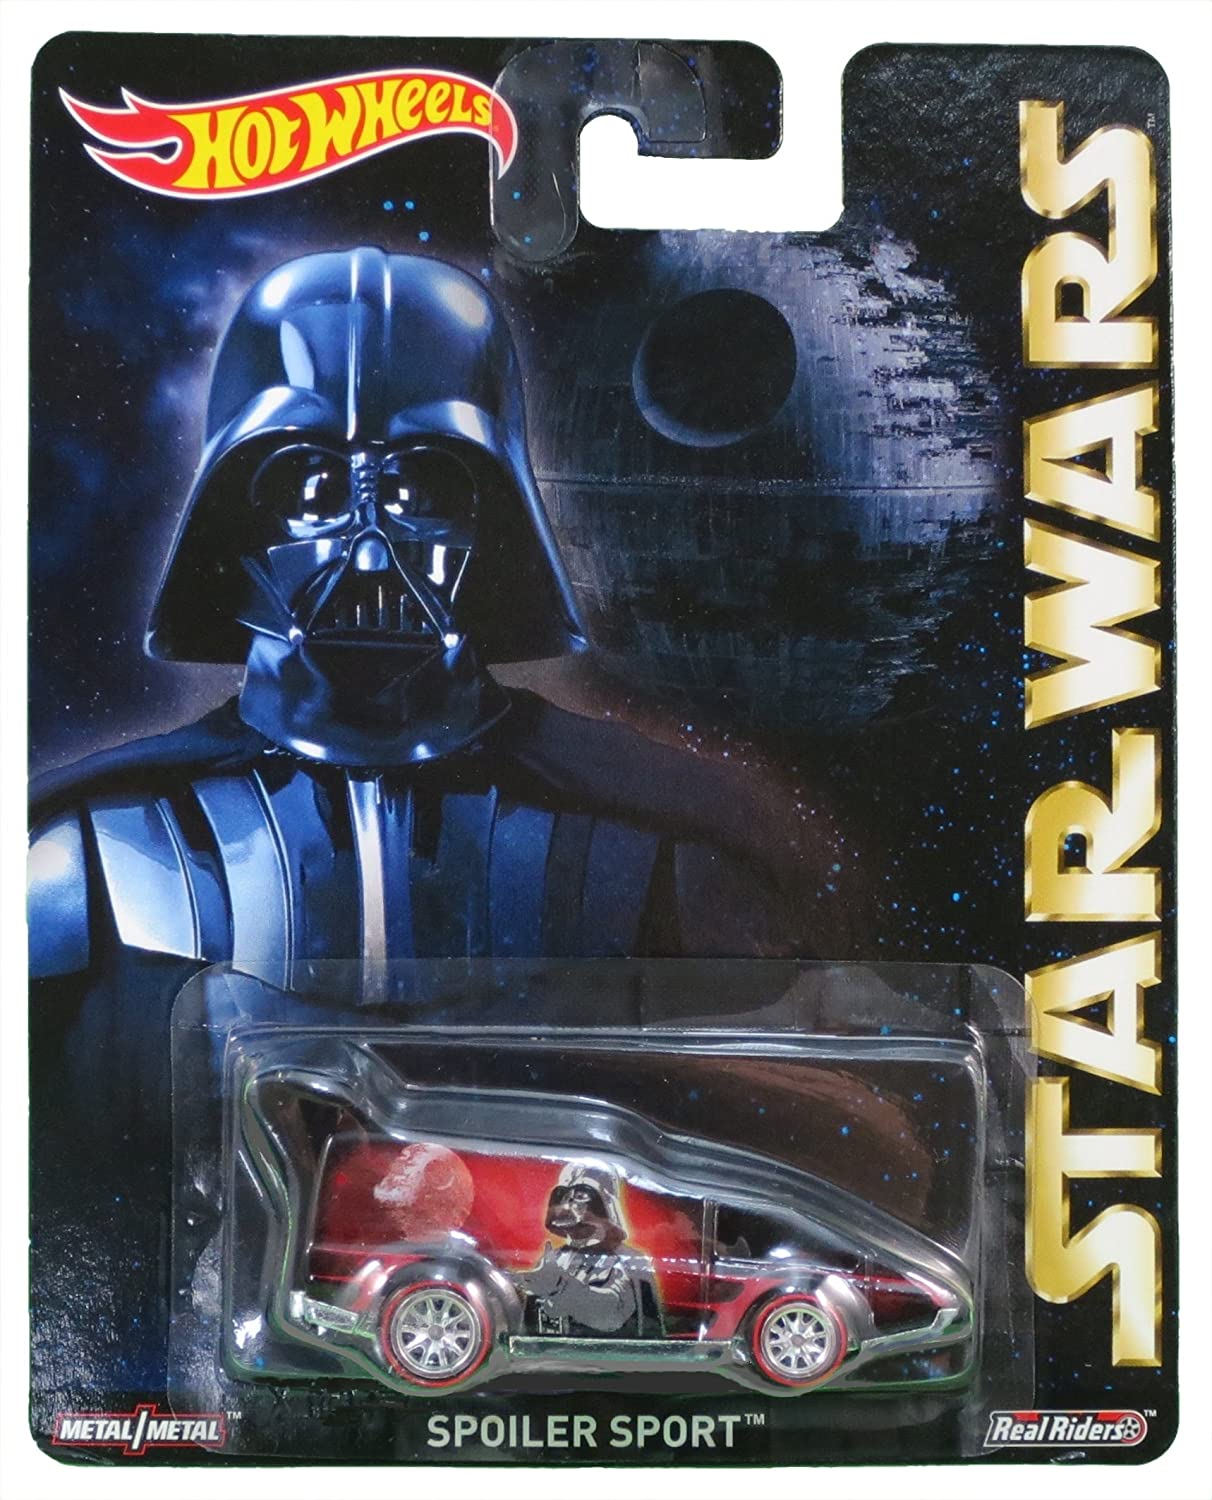 Hot Wheels Pop Culture 2015 Star Wars Darth Vader Spoiler Sport Diecast Car Mattel CFP39